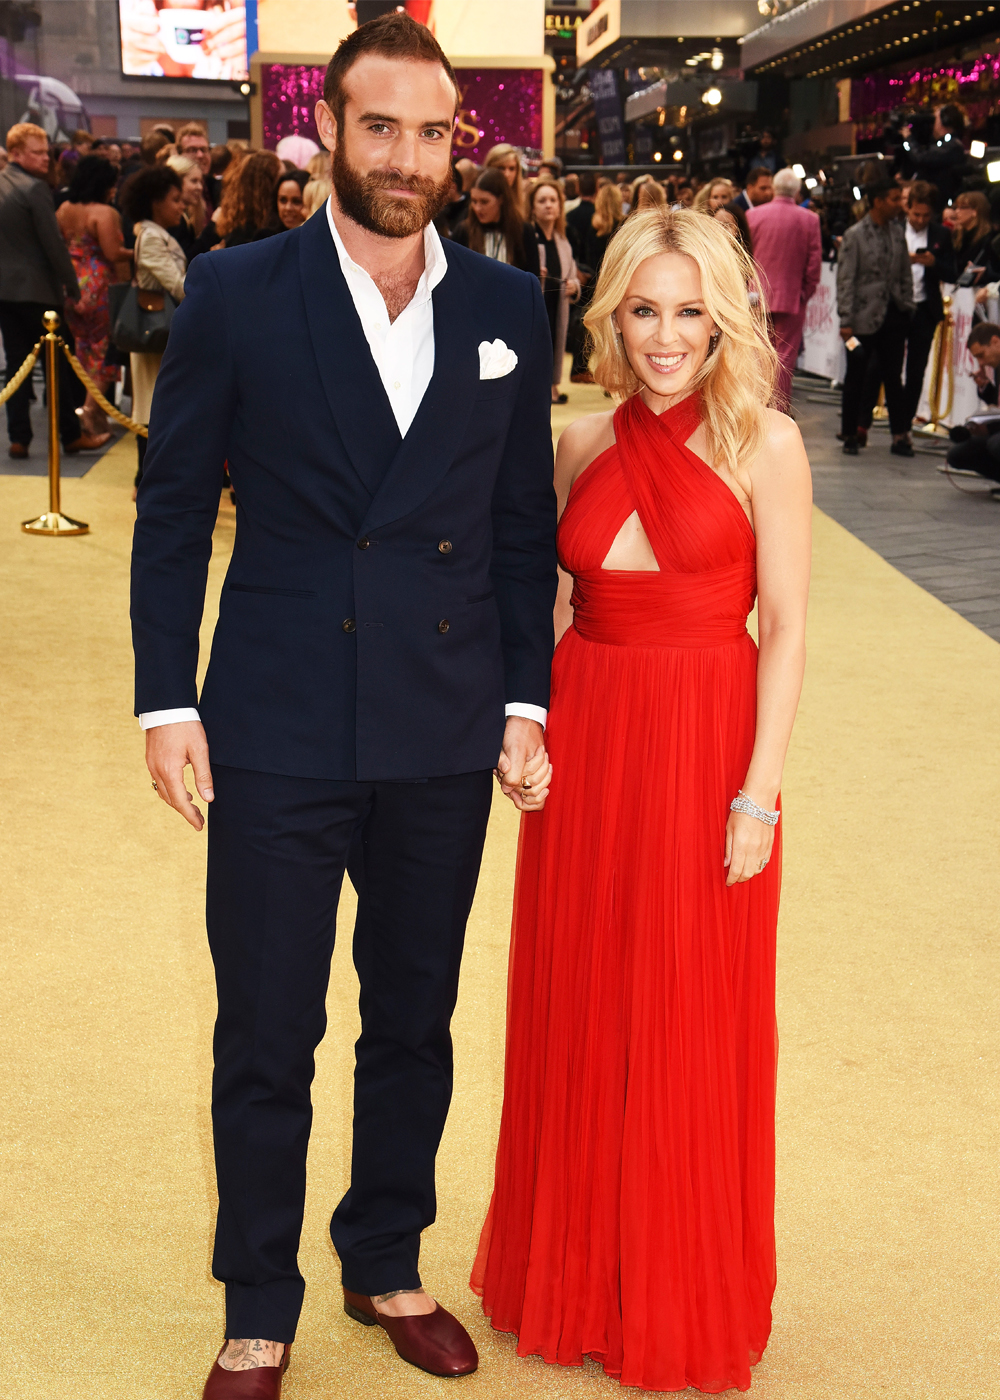 Andy Lee dating Kylie Minogue